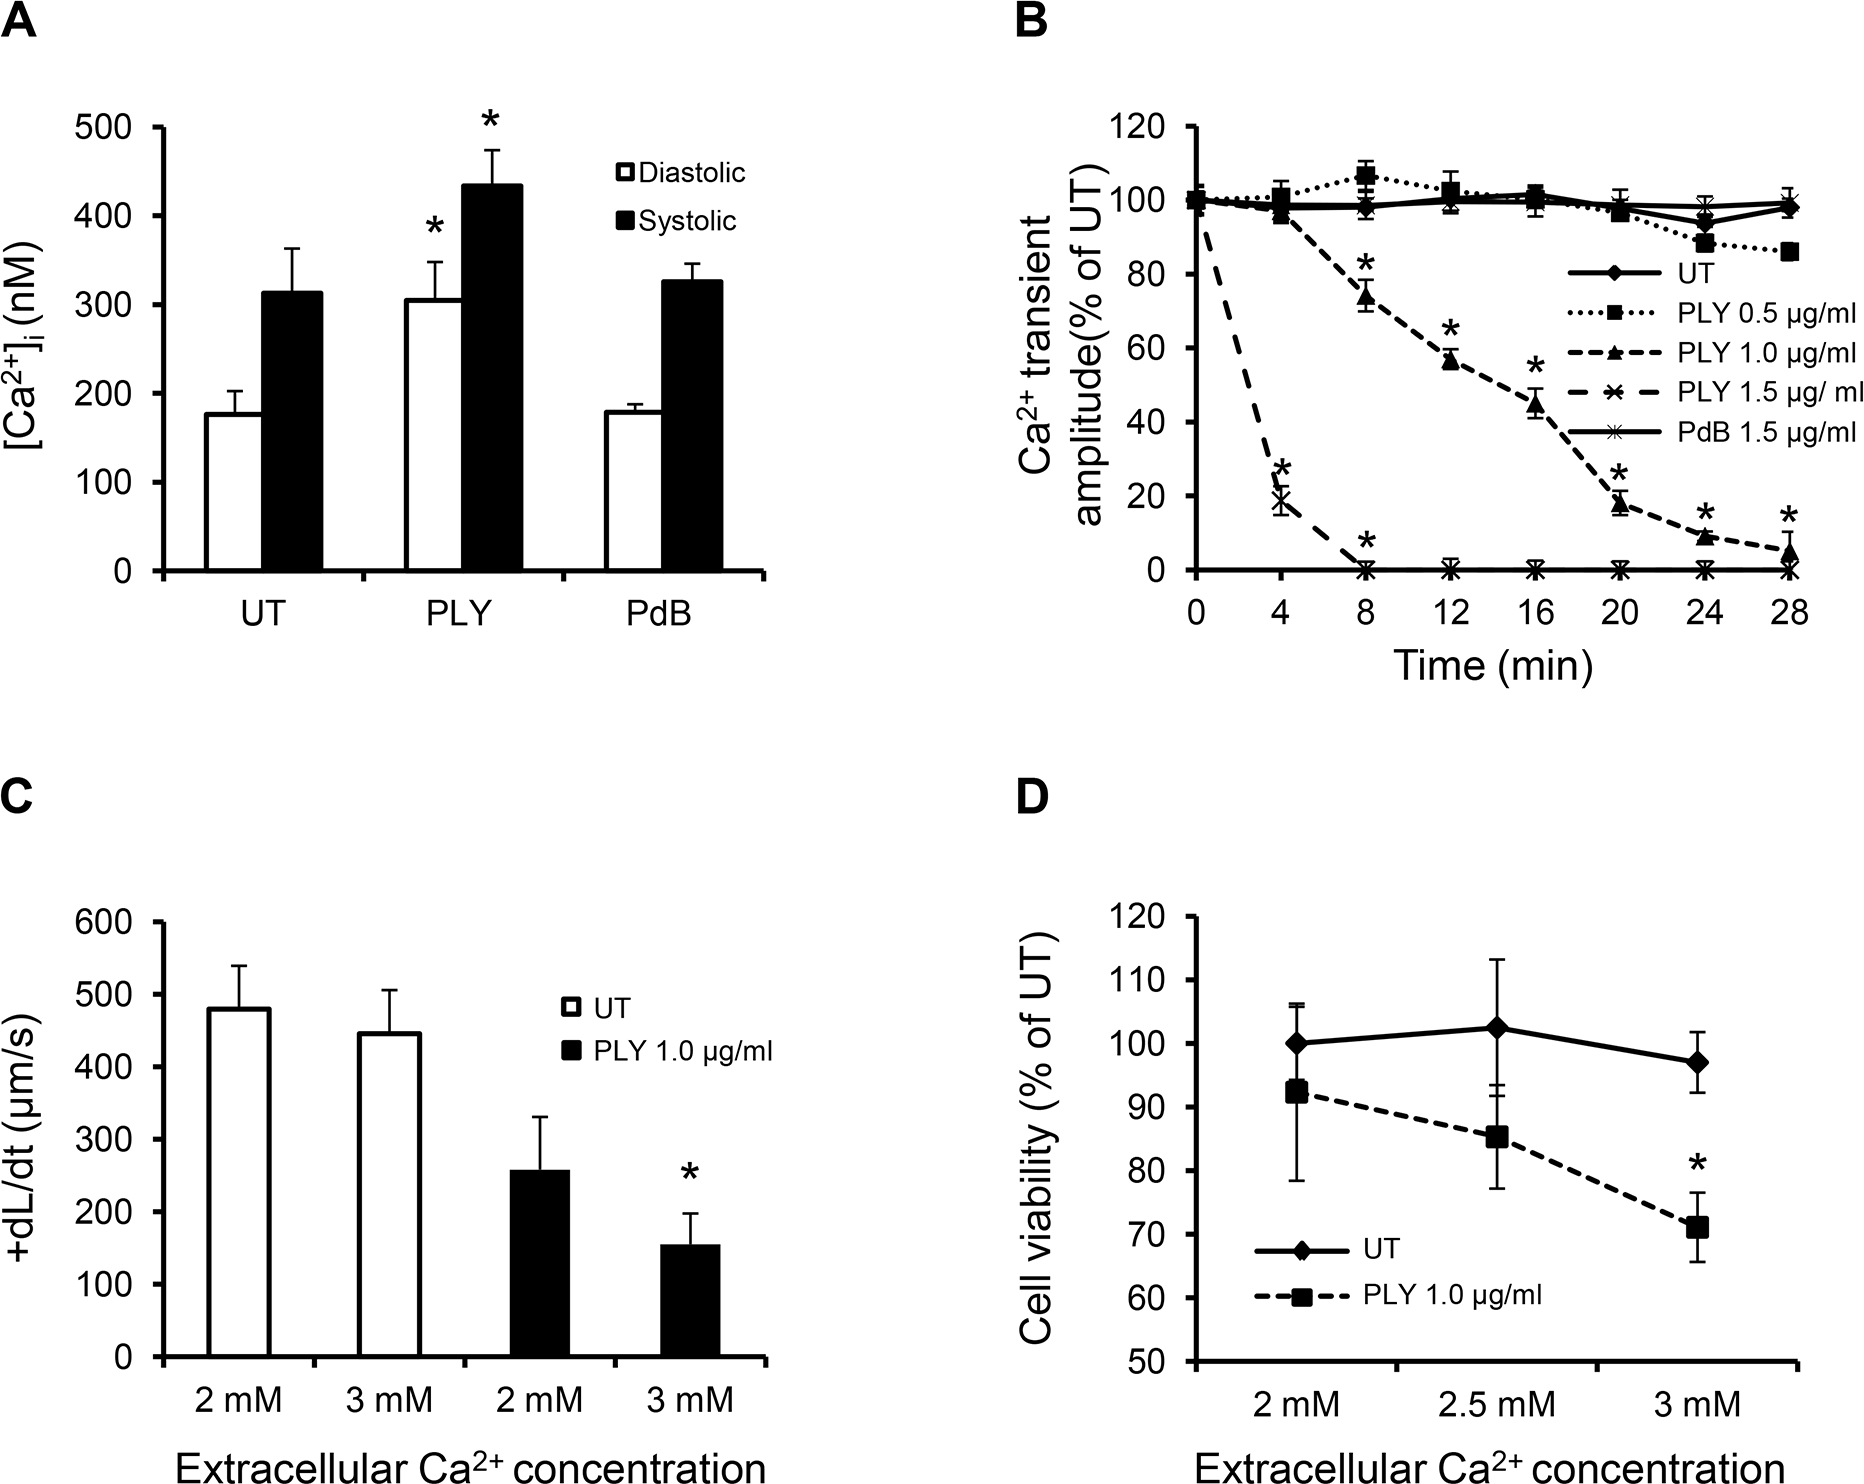 Profound calcium influx induces cardiomyocyte dysfunction and injury in response to sub-lytic PLY.